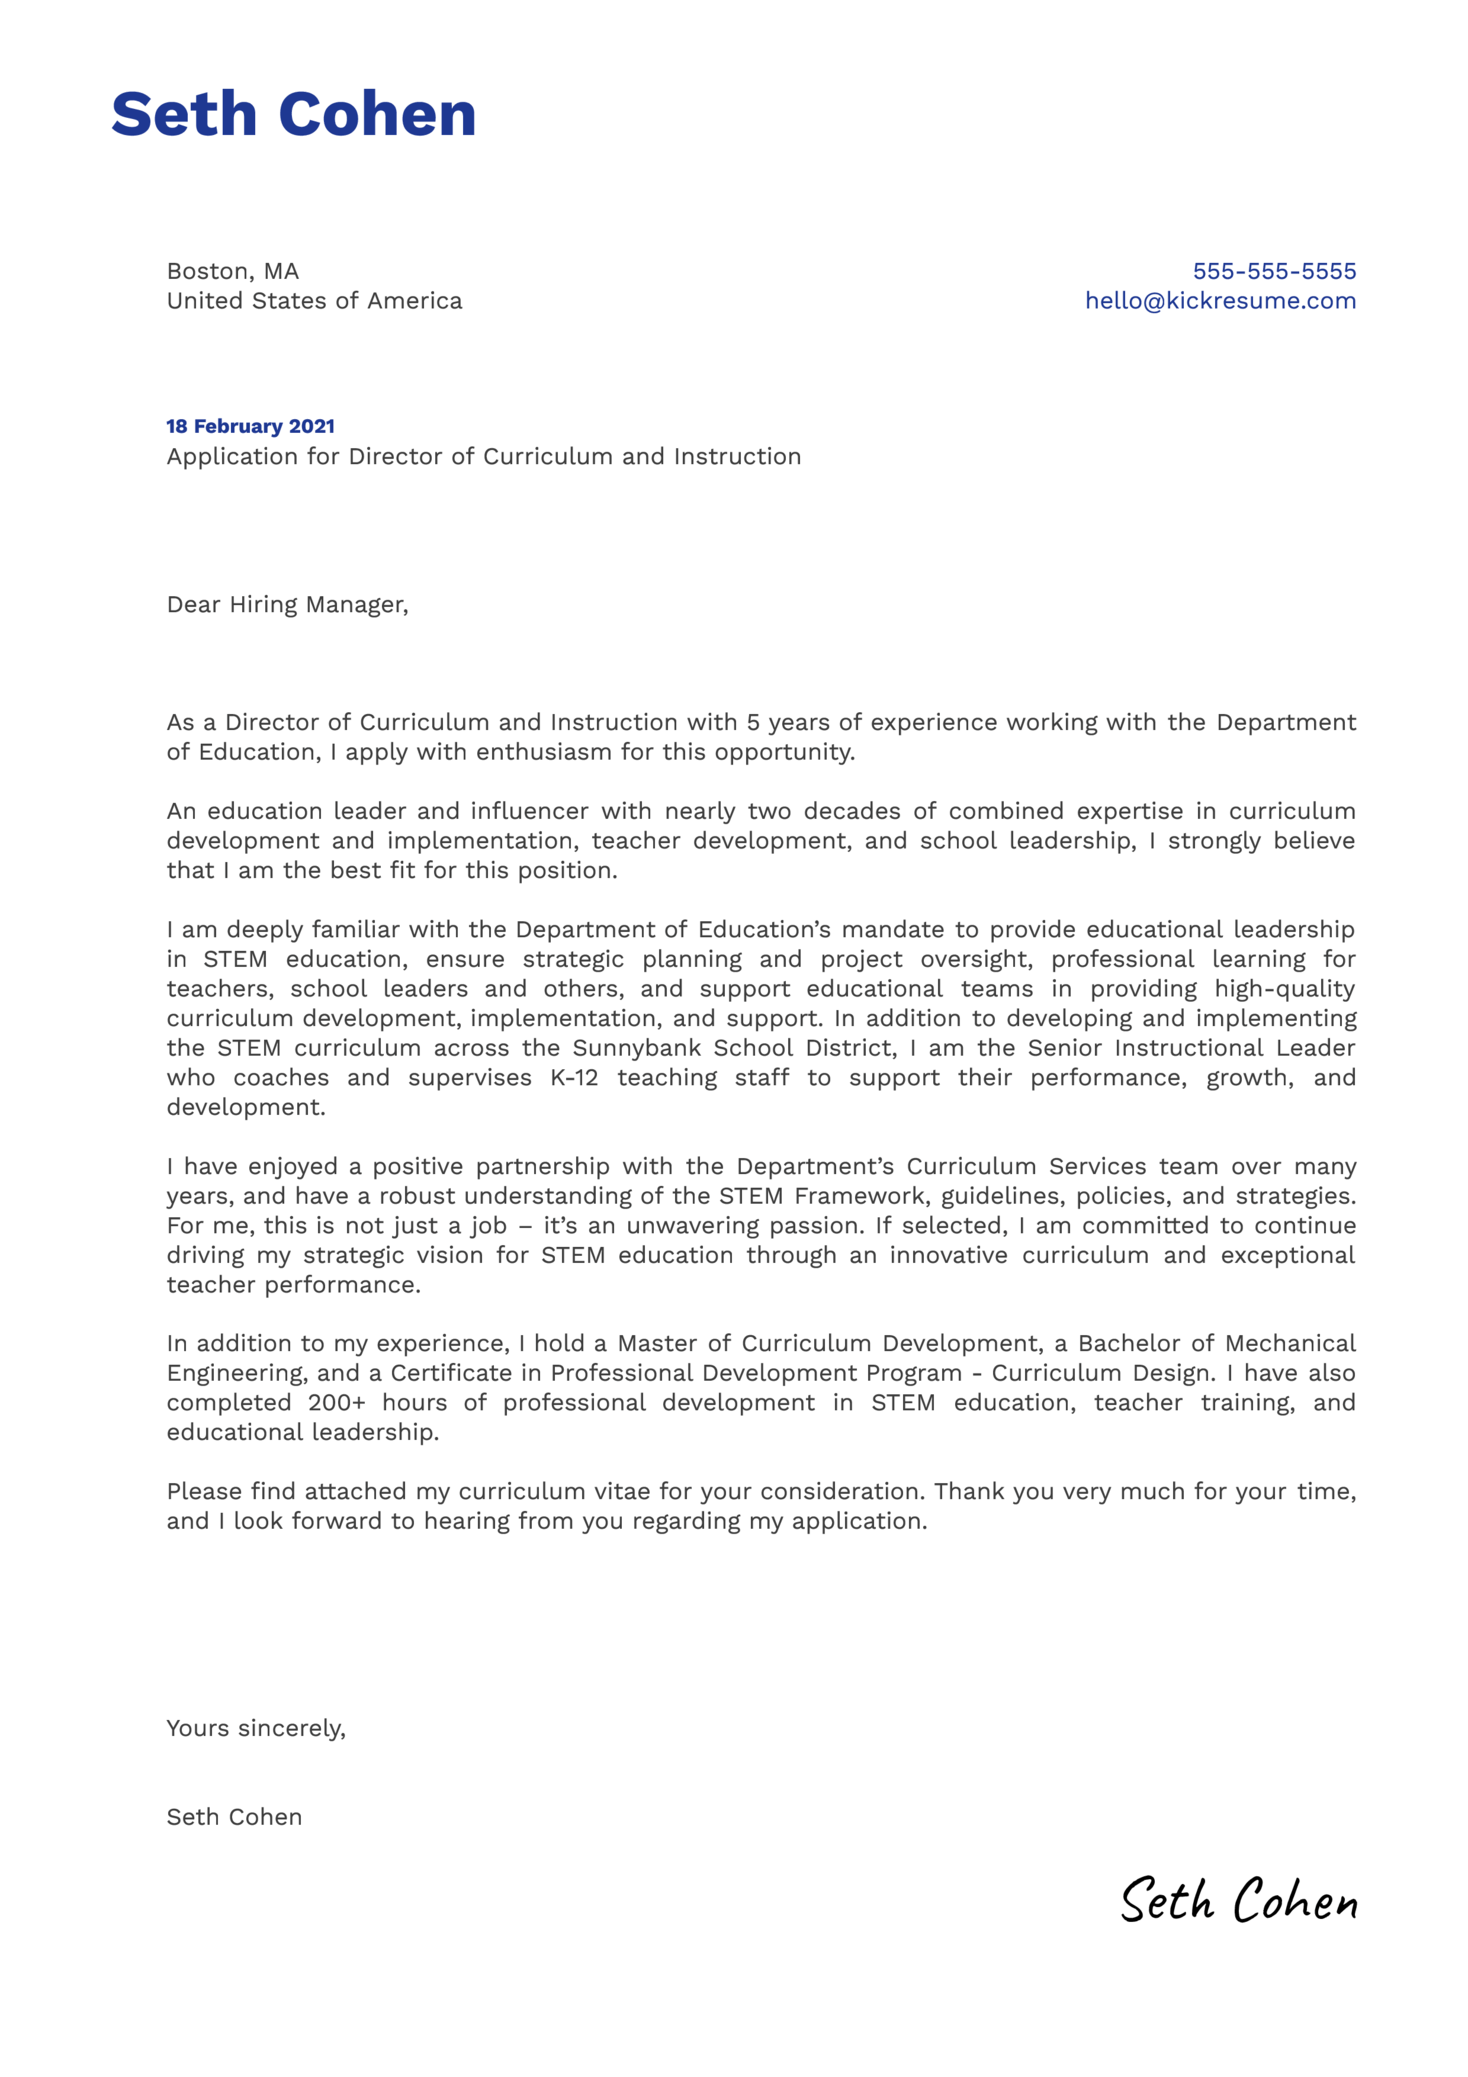 Director of Curriculum and Instruction Cover Letter Template